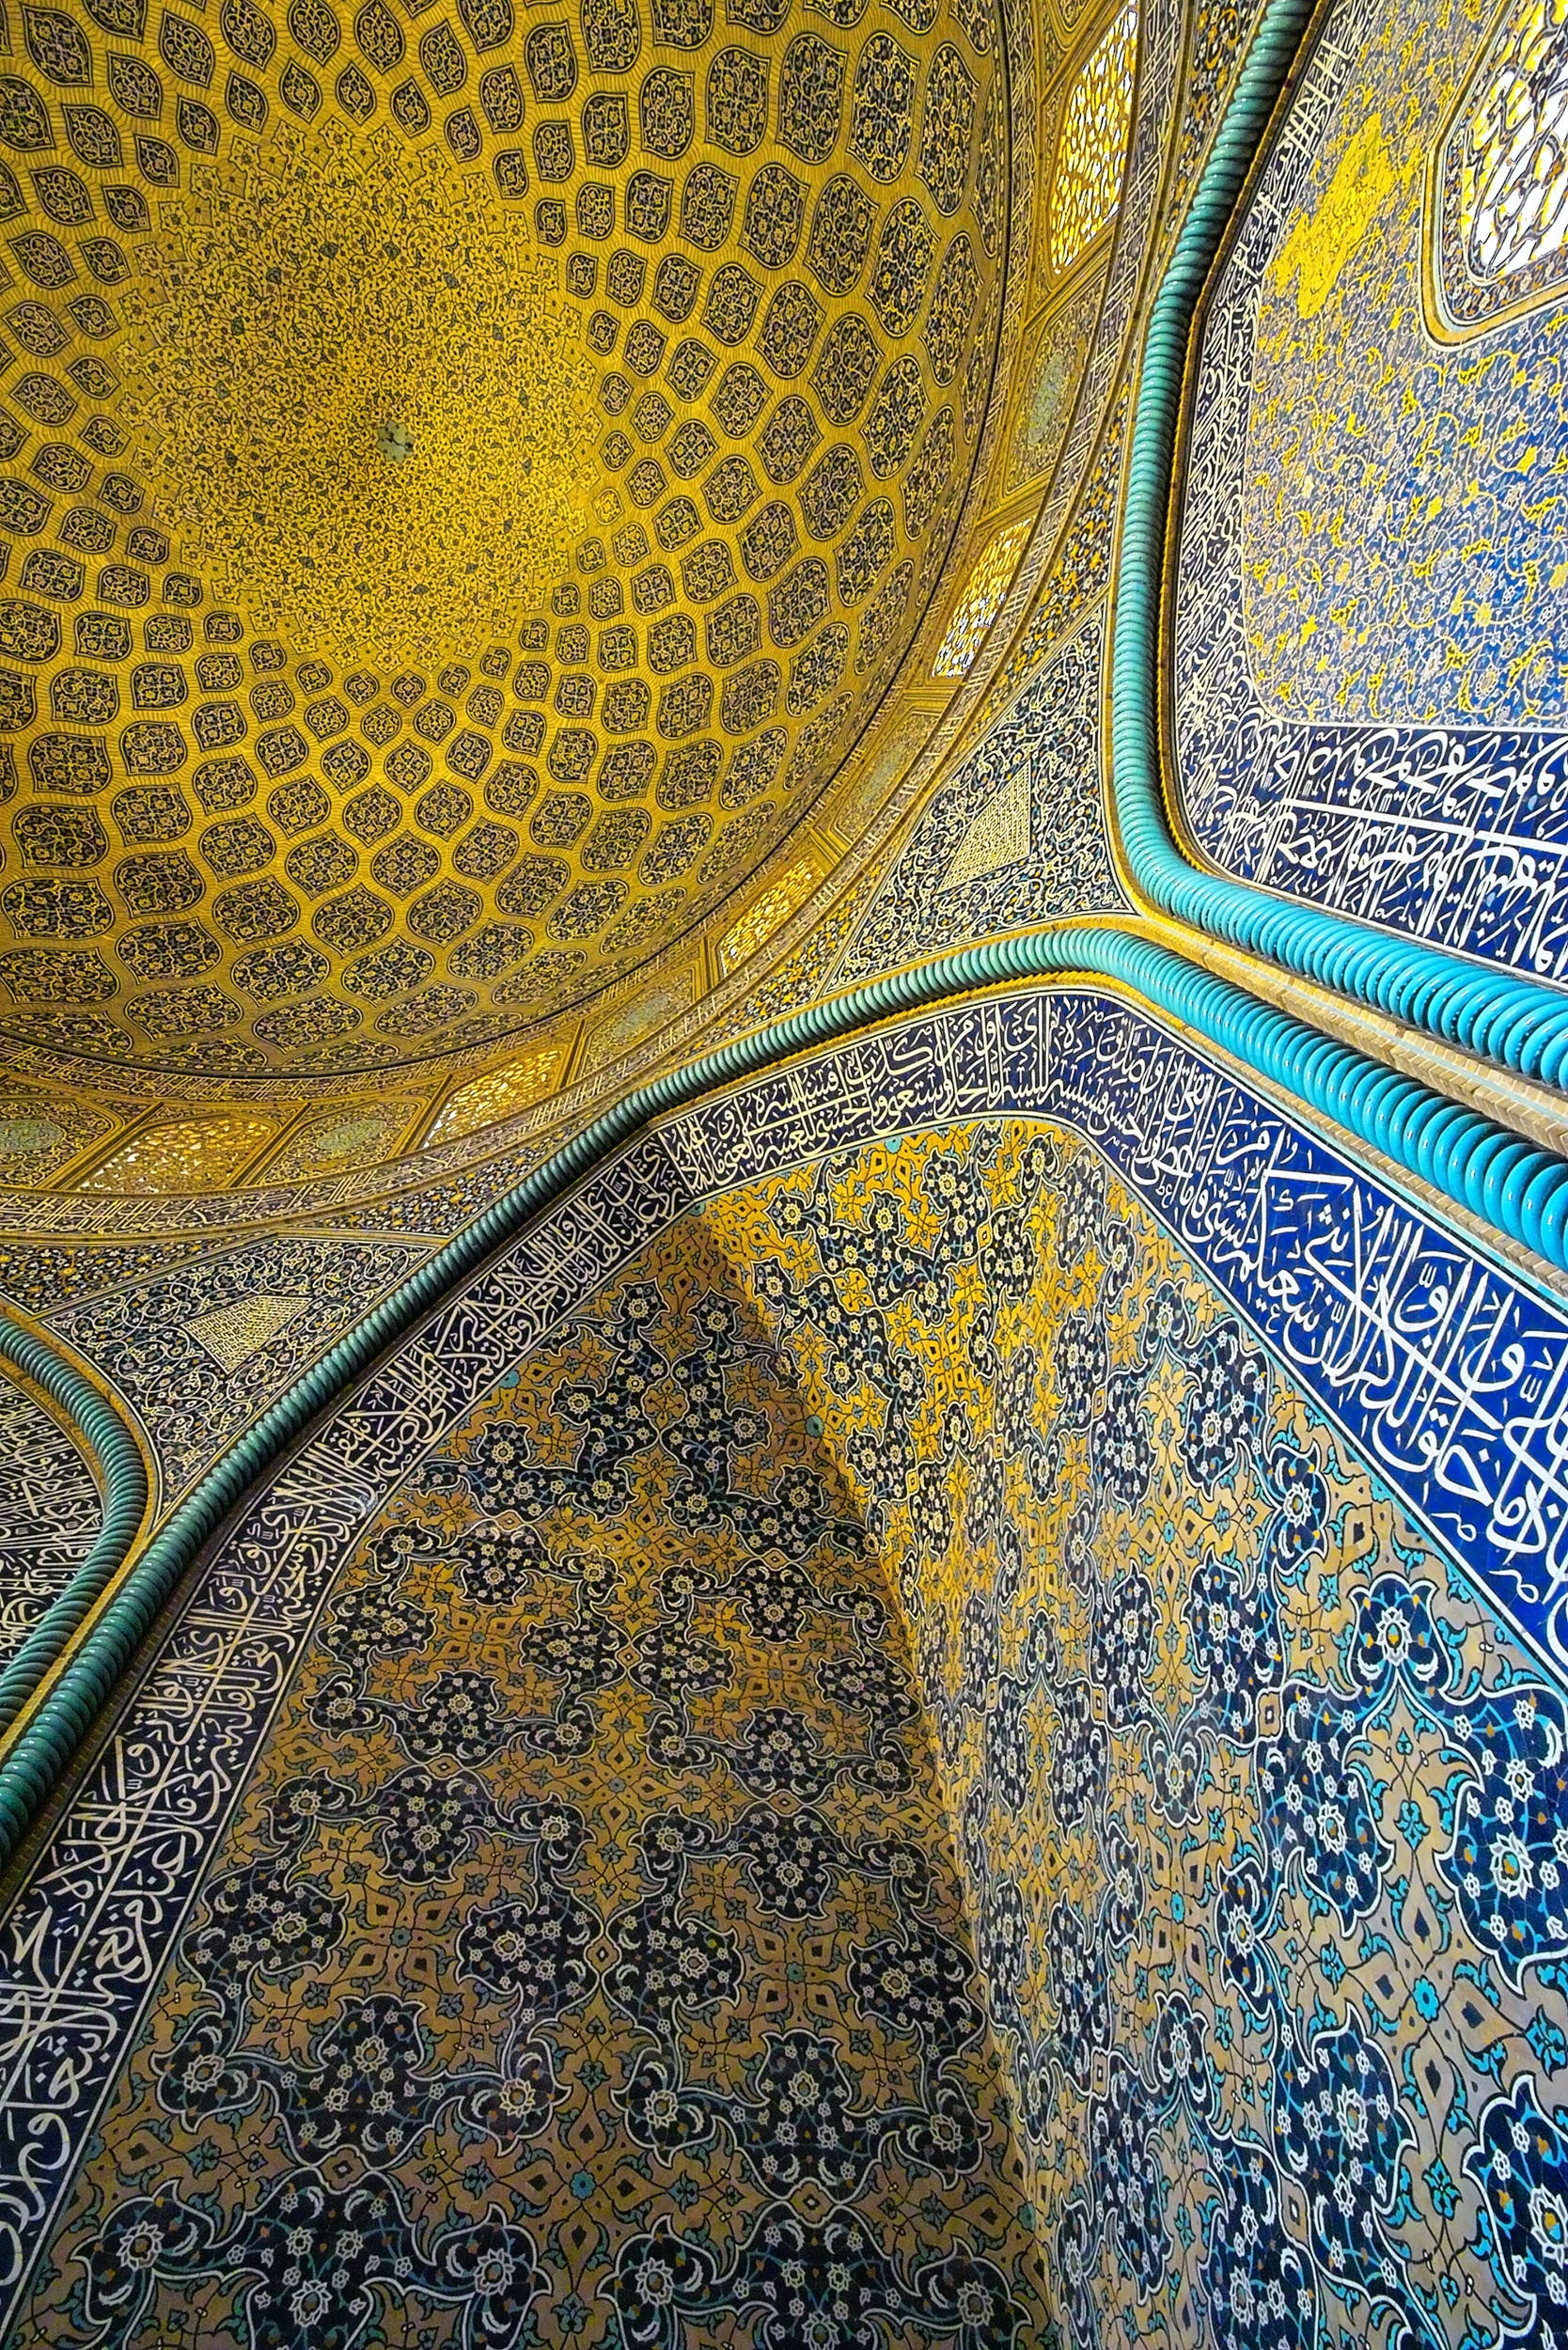 Free stock photo of Esfahan